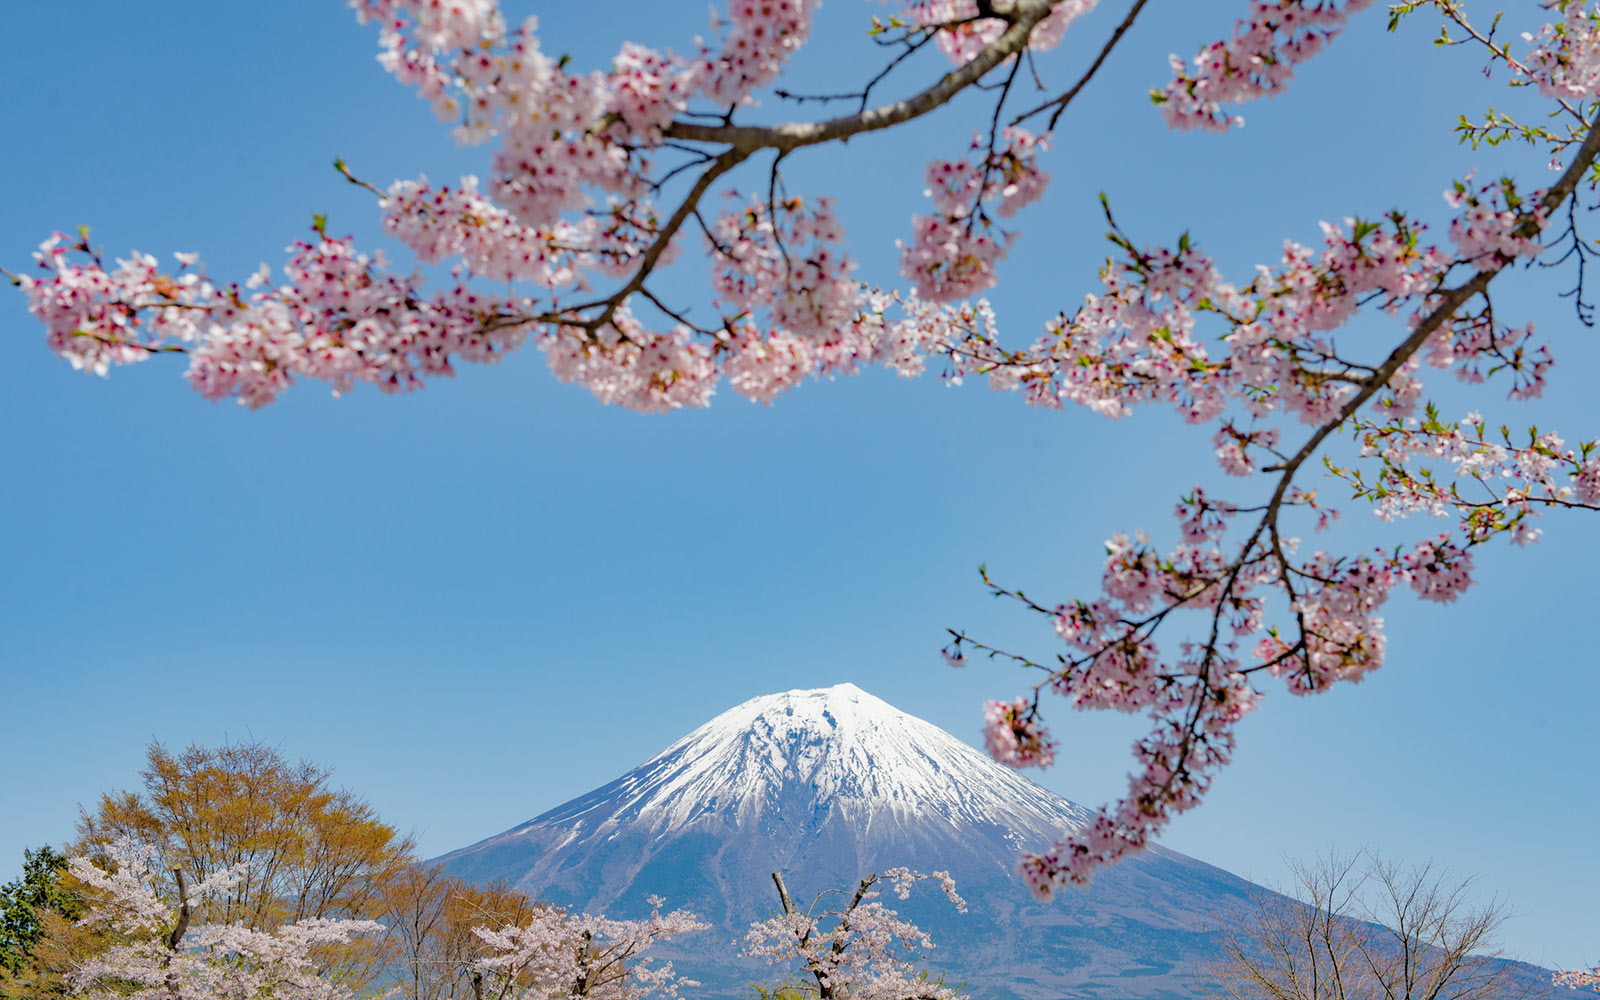 Cherry Blossoms near Mt. Fuji, Japan